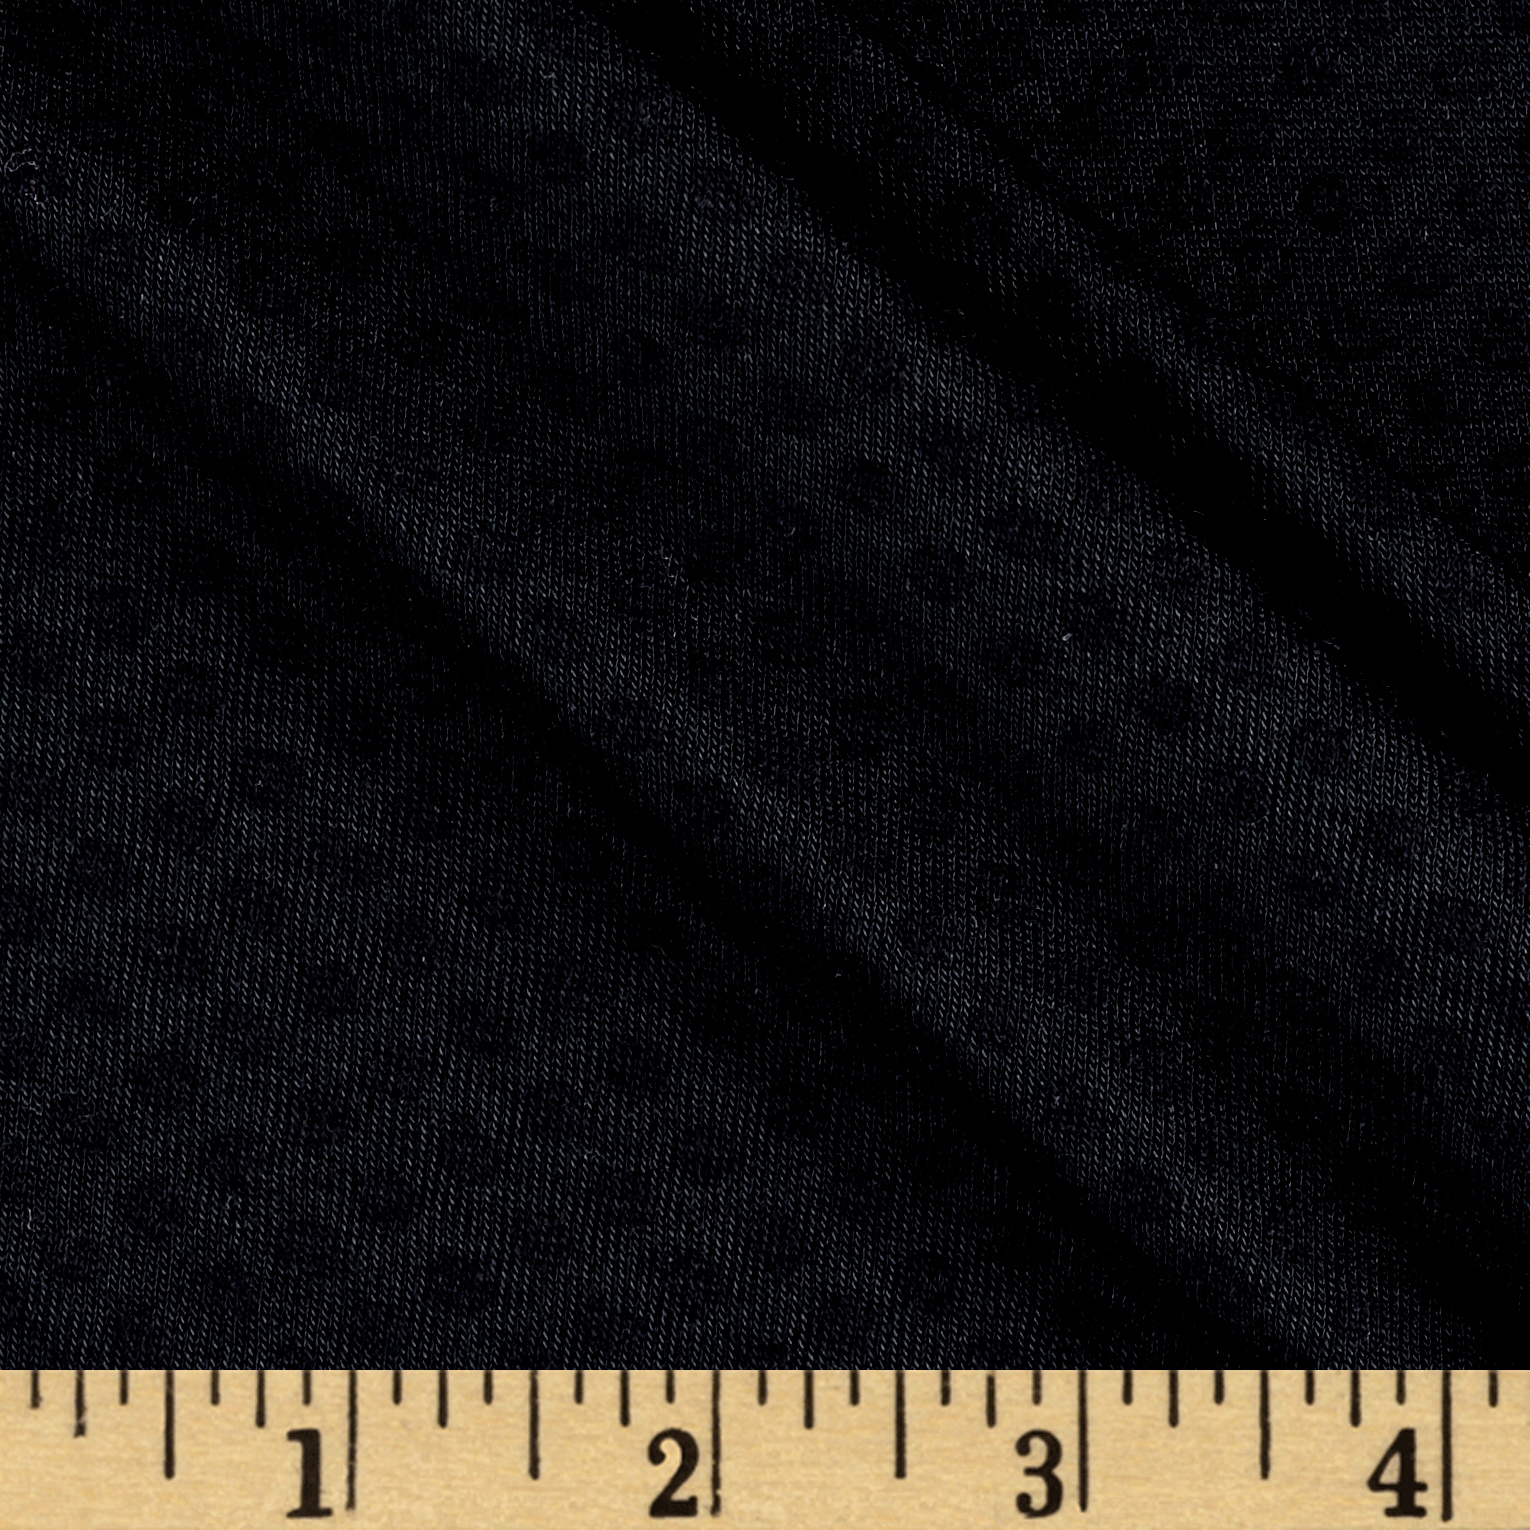 Poly Rayon Spandex Jersey Knit Tone on Tone Black Dots Fabric by Bellagio in USA